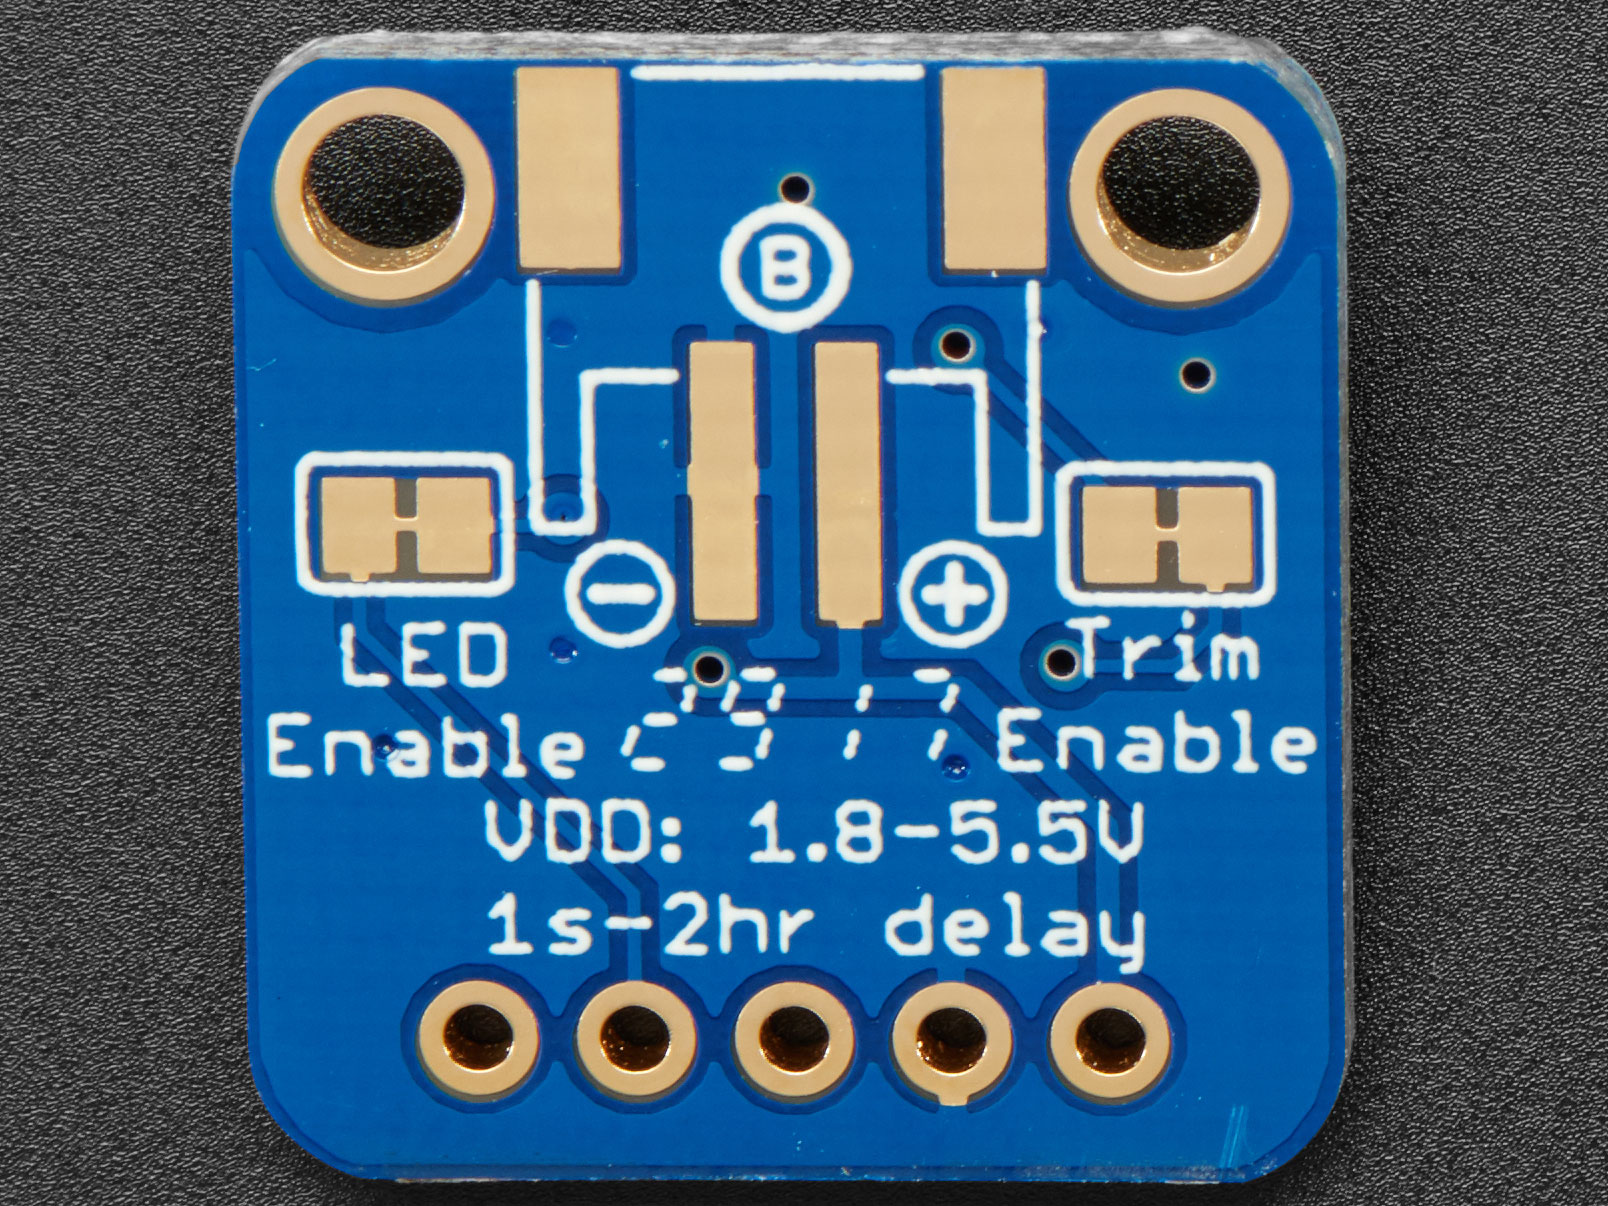 adafruit_products_back.jpg